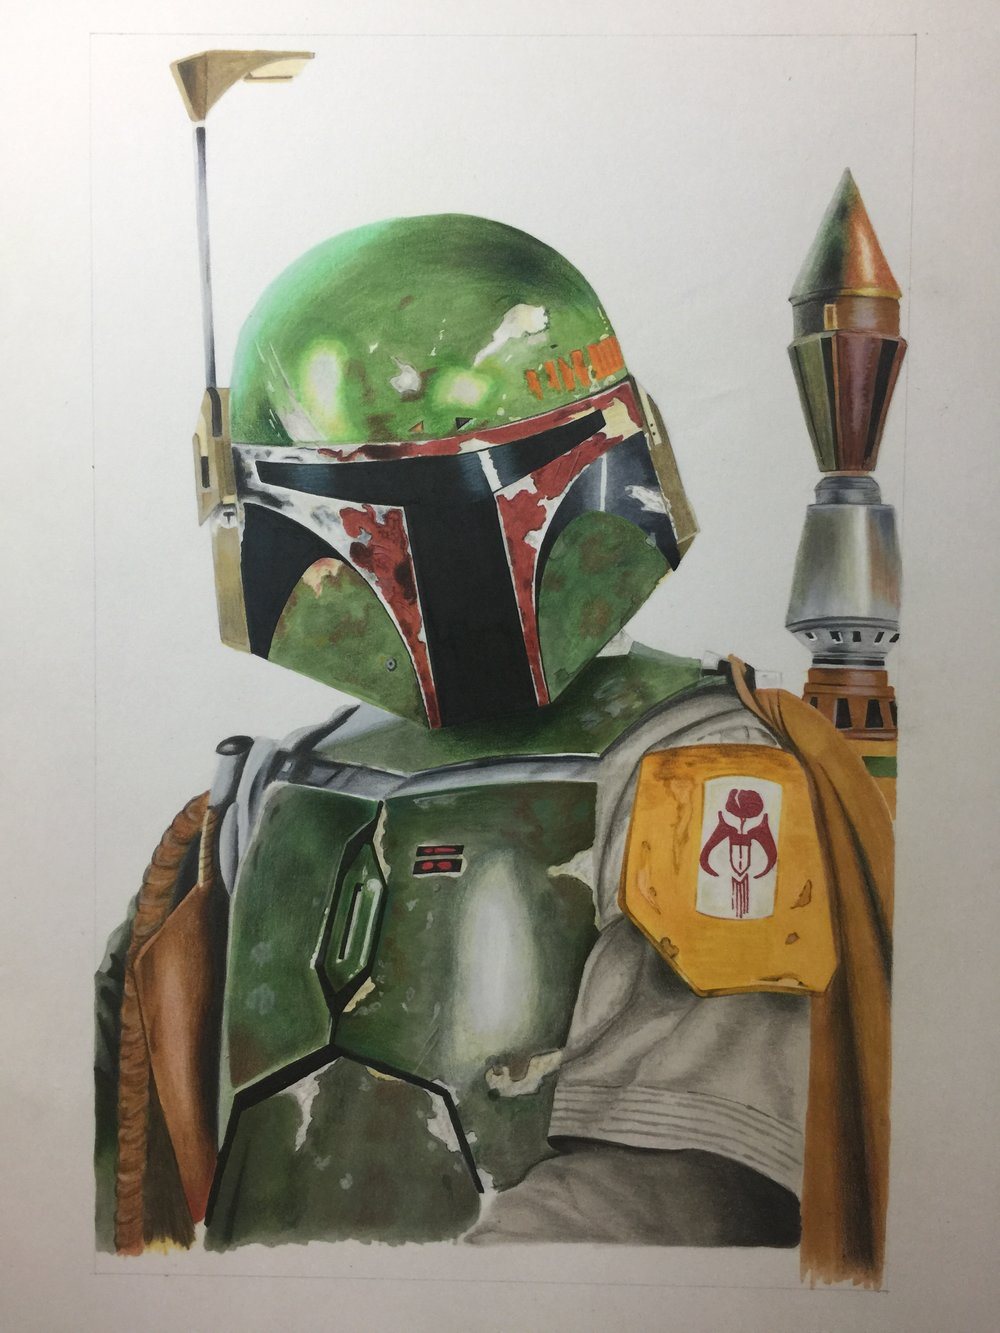 Boba Fett Final Image